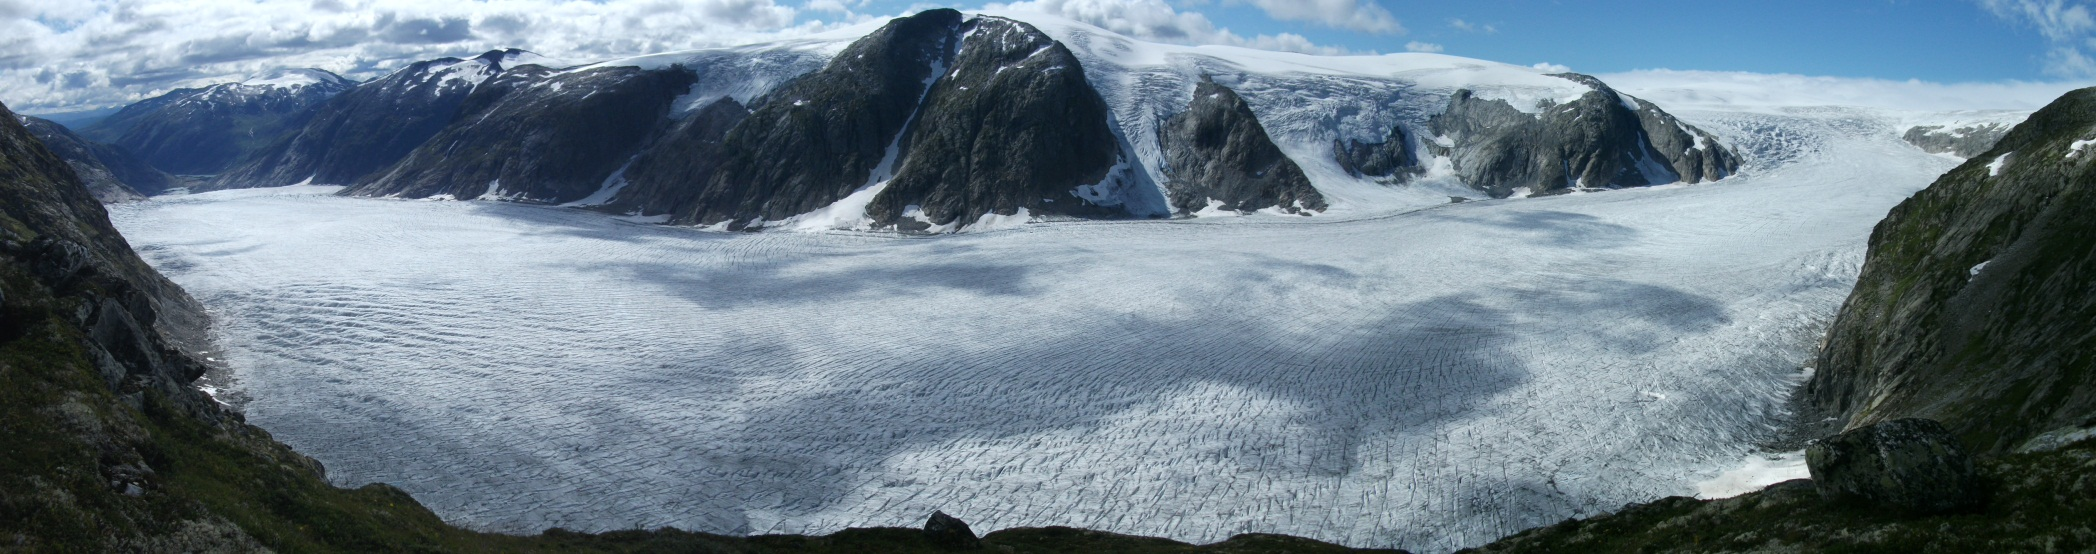 The panorama view of Tunsbergdalsbreen seen from Røykjedalsbandet Ridge. Photo: Morgan Gibson 2011.